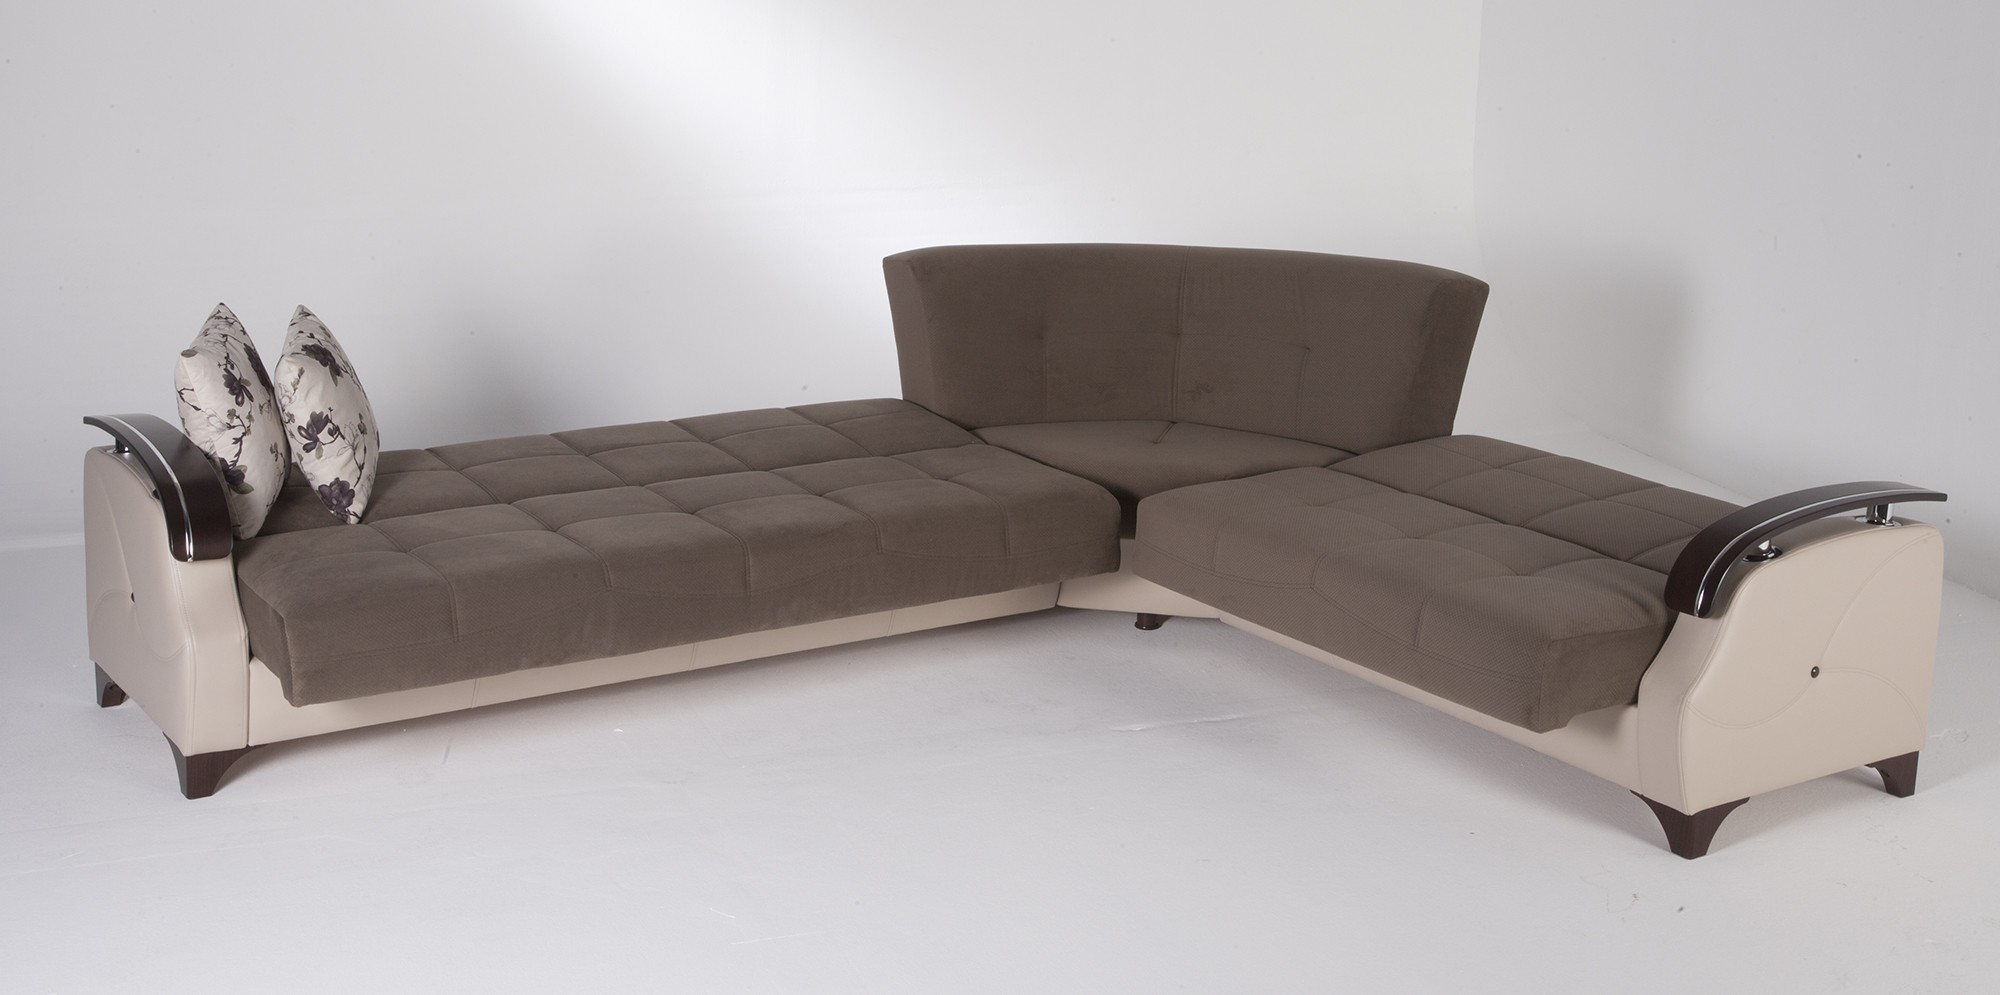 Types of sleeper sofas sectional sleeper sofa in various types thesofa Sleeper sofa uk